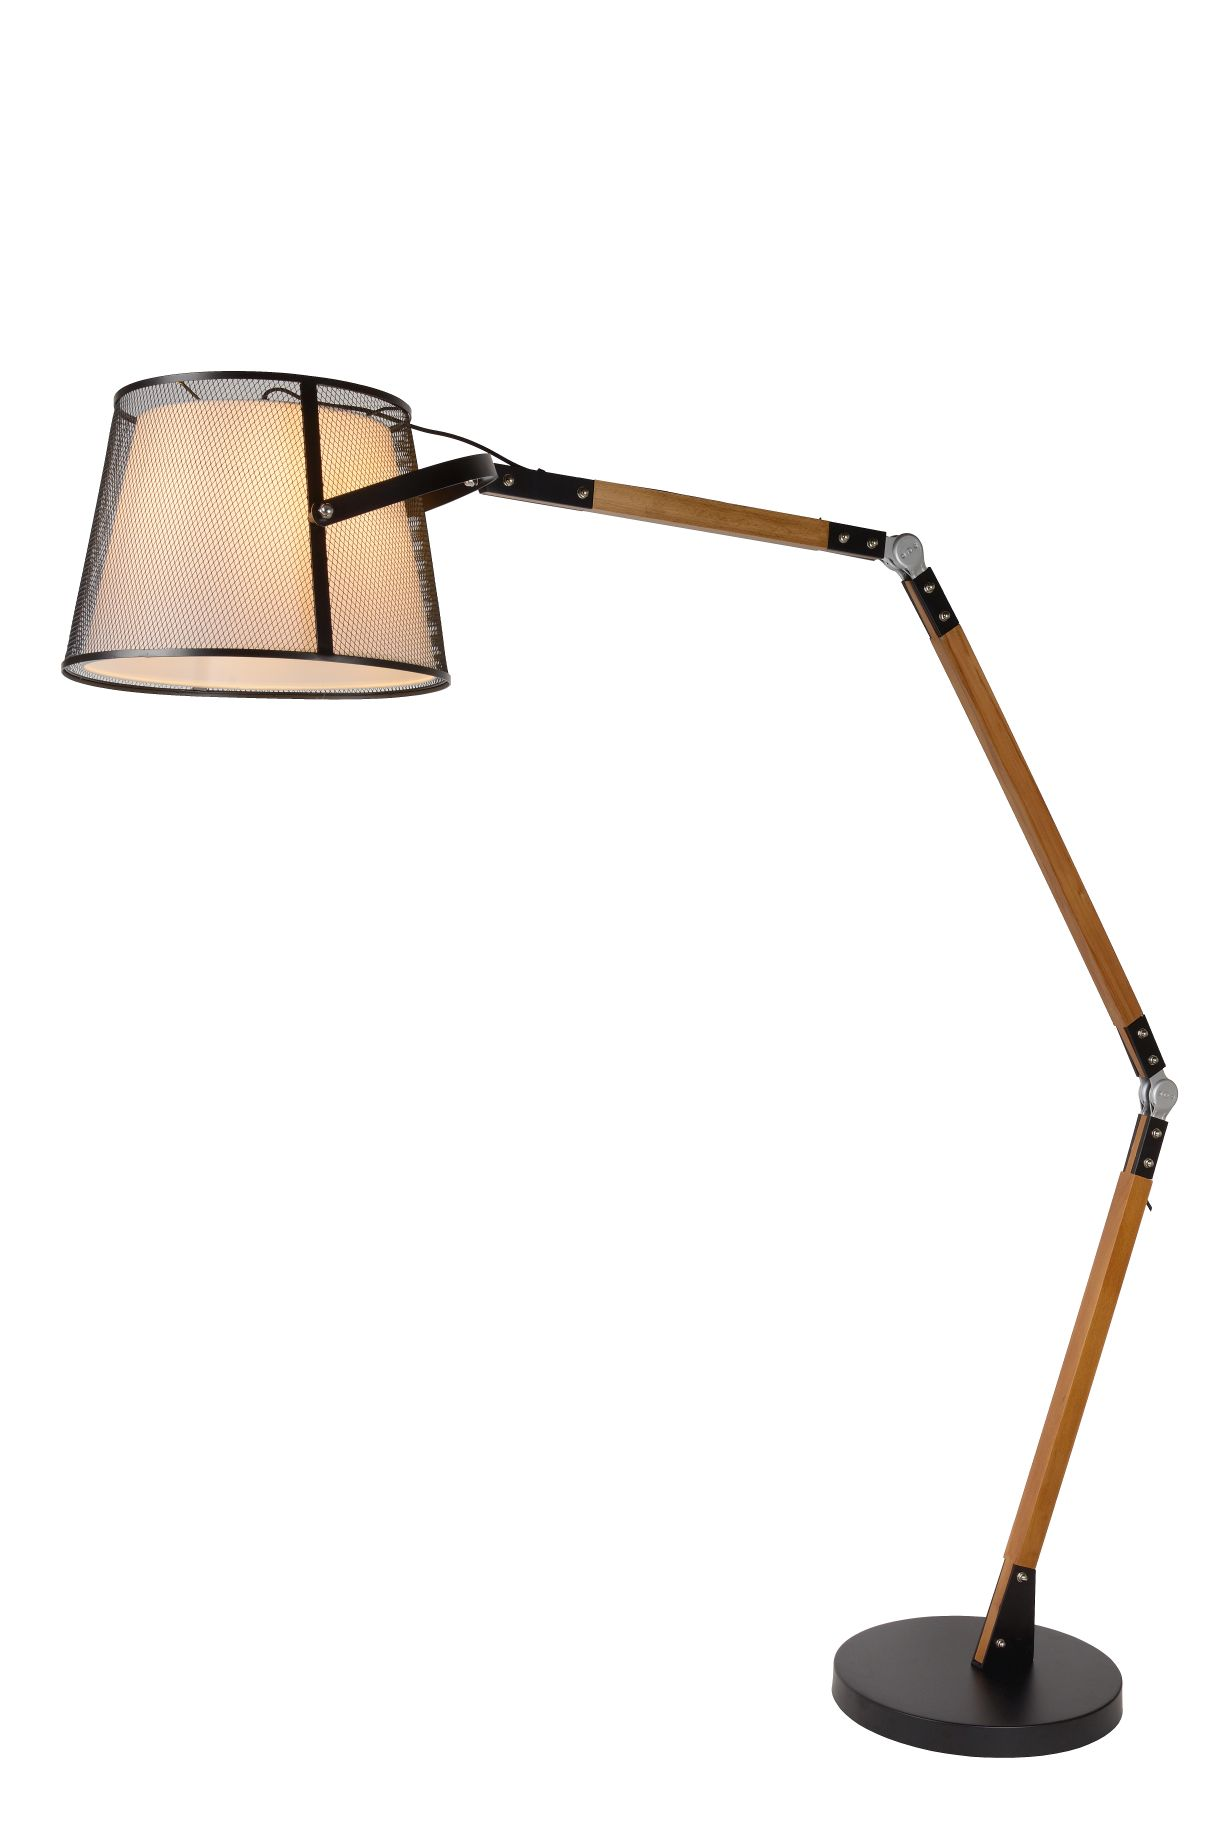 ALDGATE Floor Lamp E27 H195cm Black